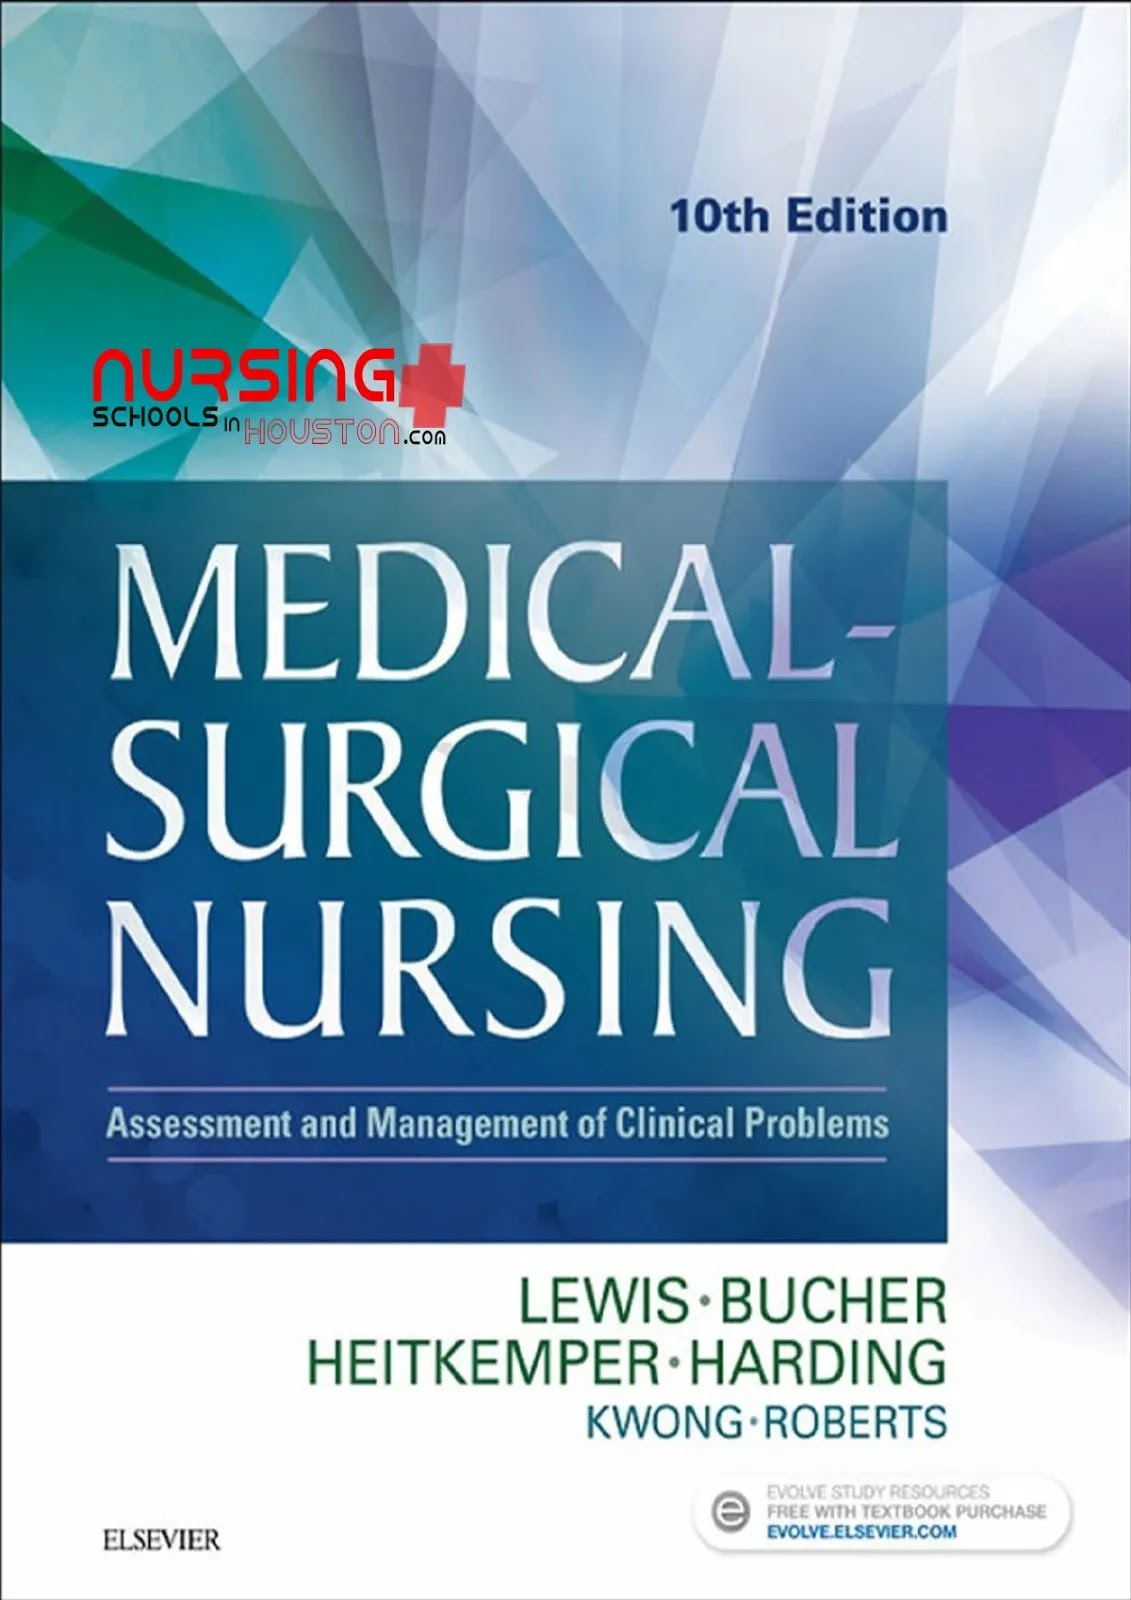 Medical-Surgical Nursing 10th Edition